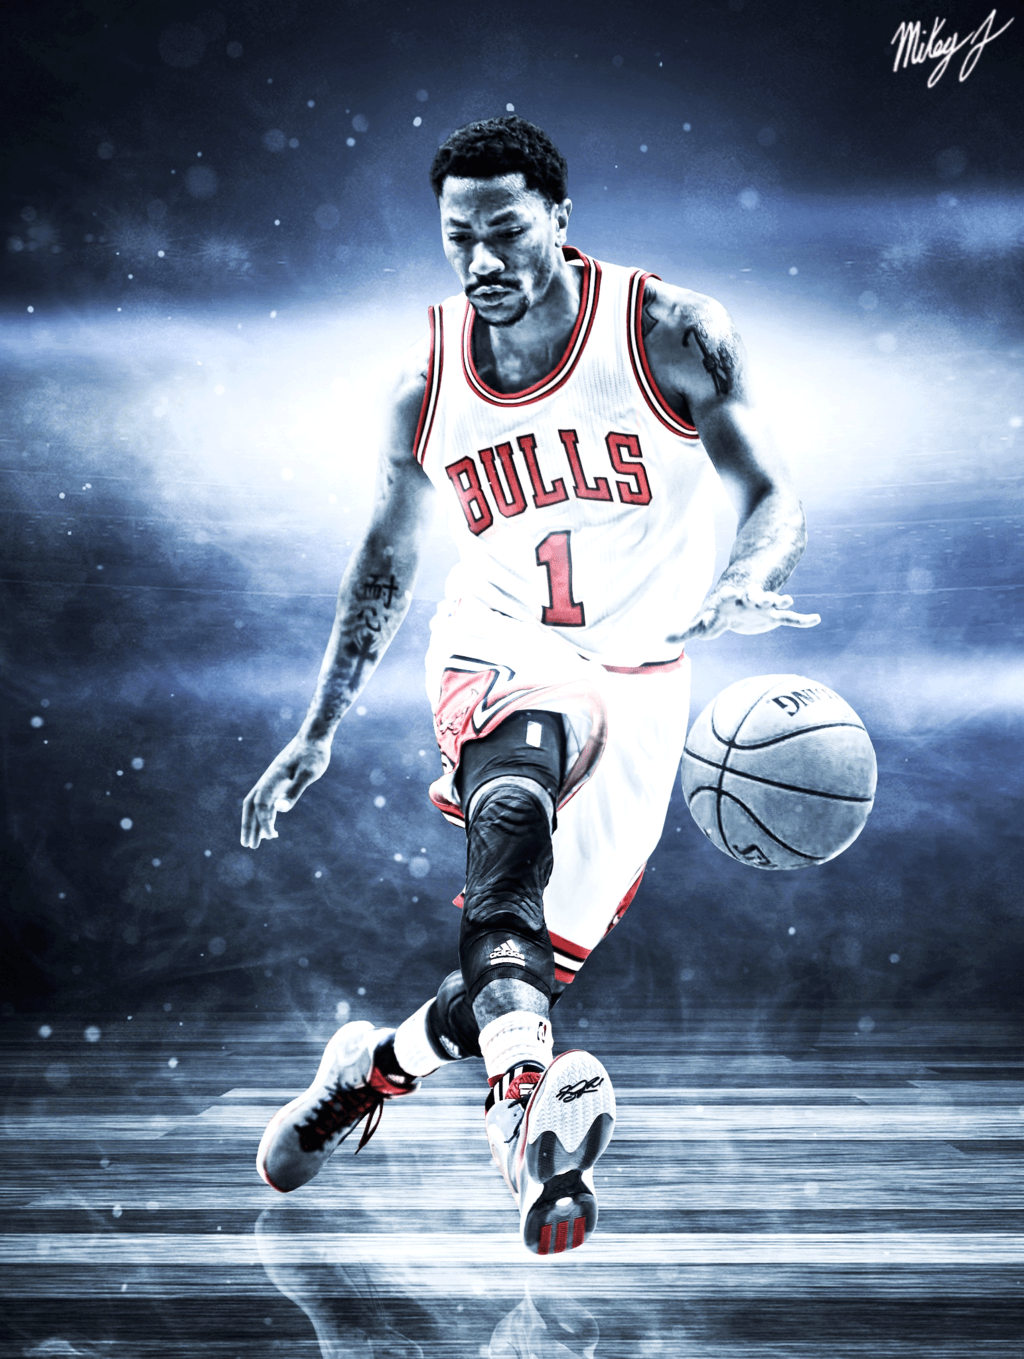 derrick rose wallpaper iphone - photo #2